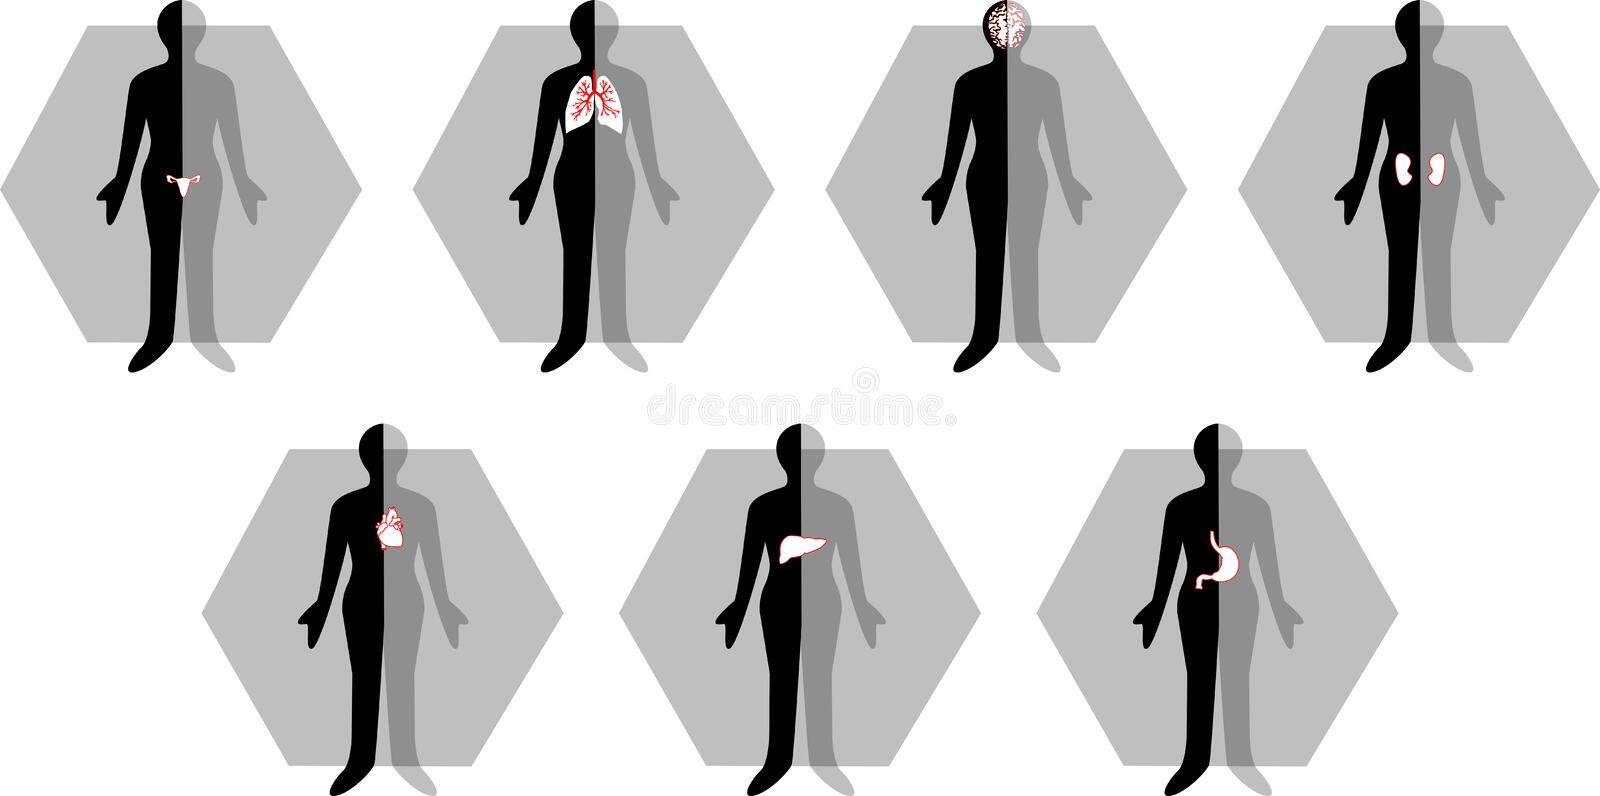 Medical female body icon royalty free stock images